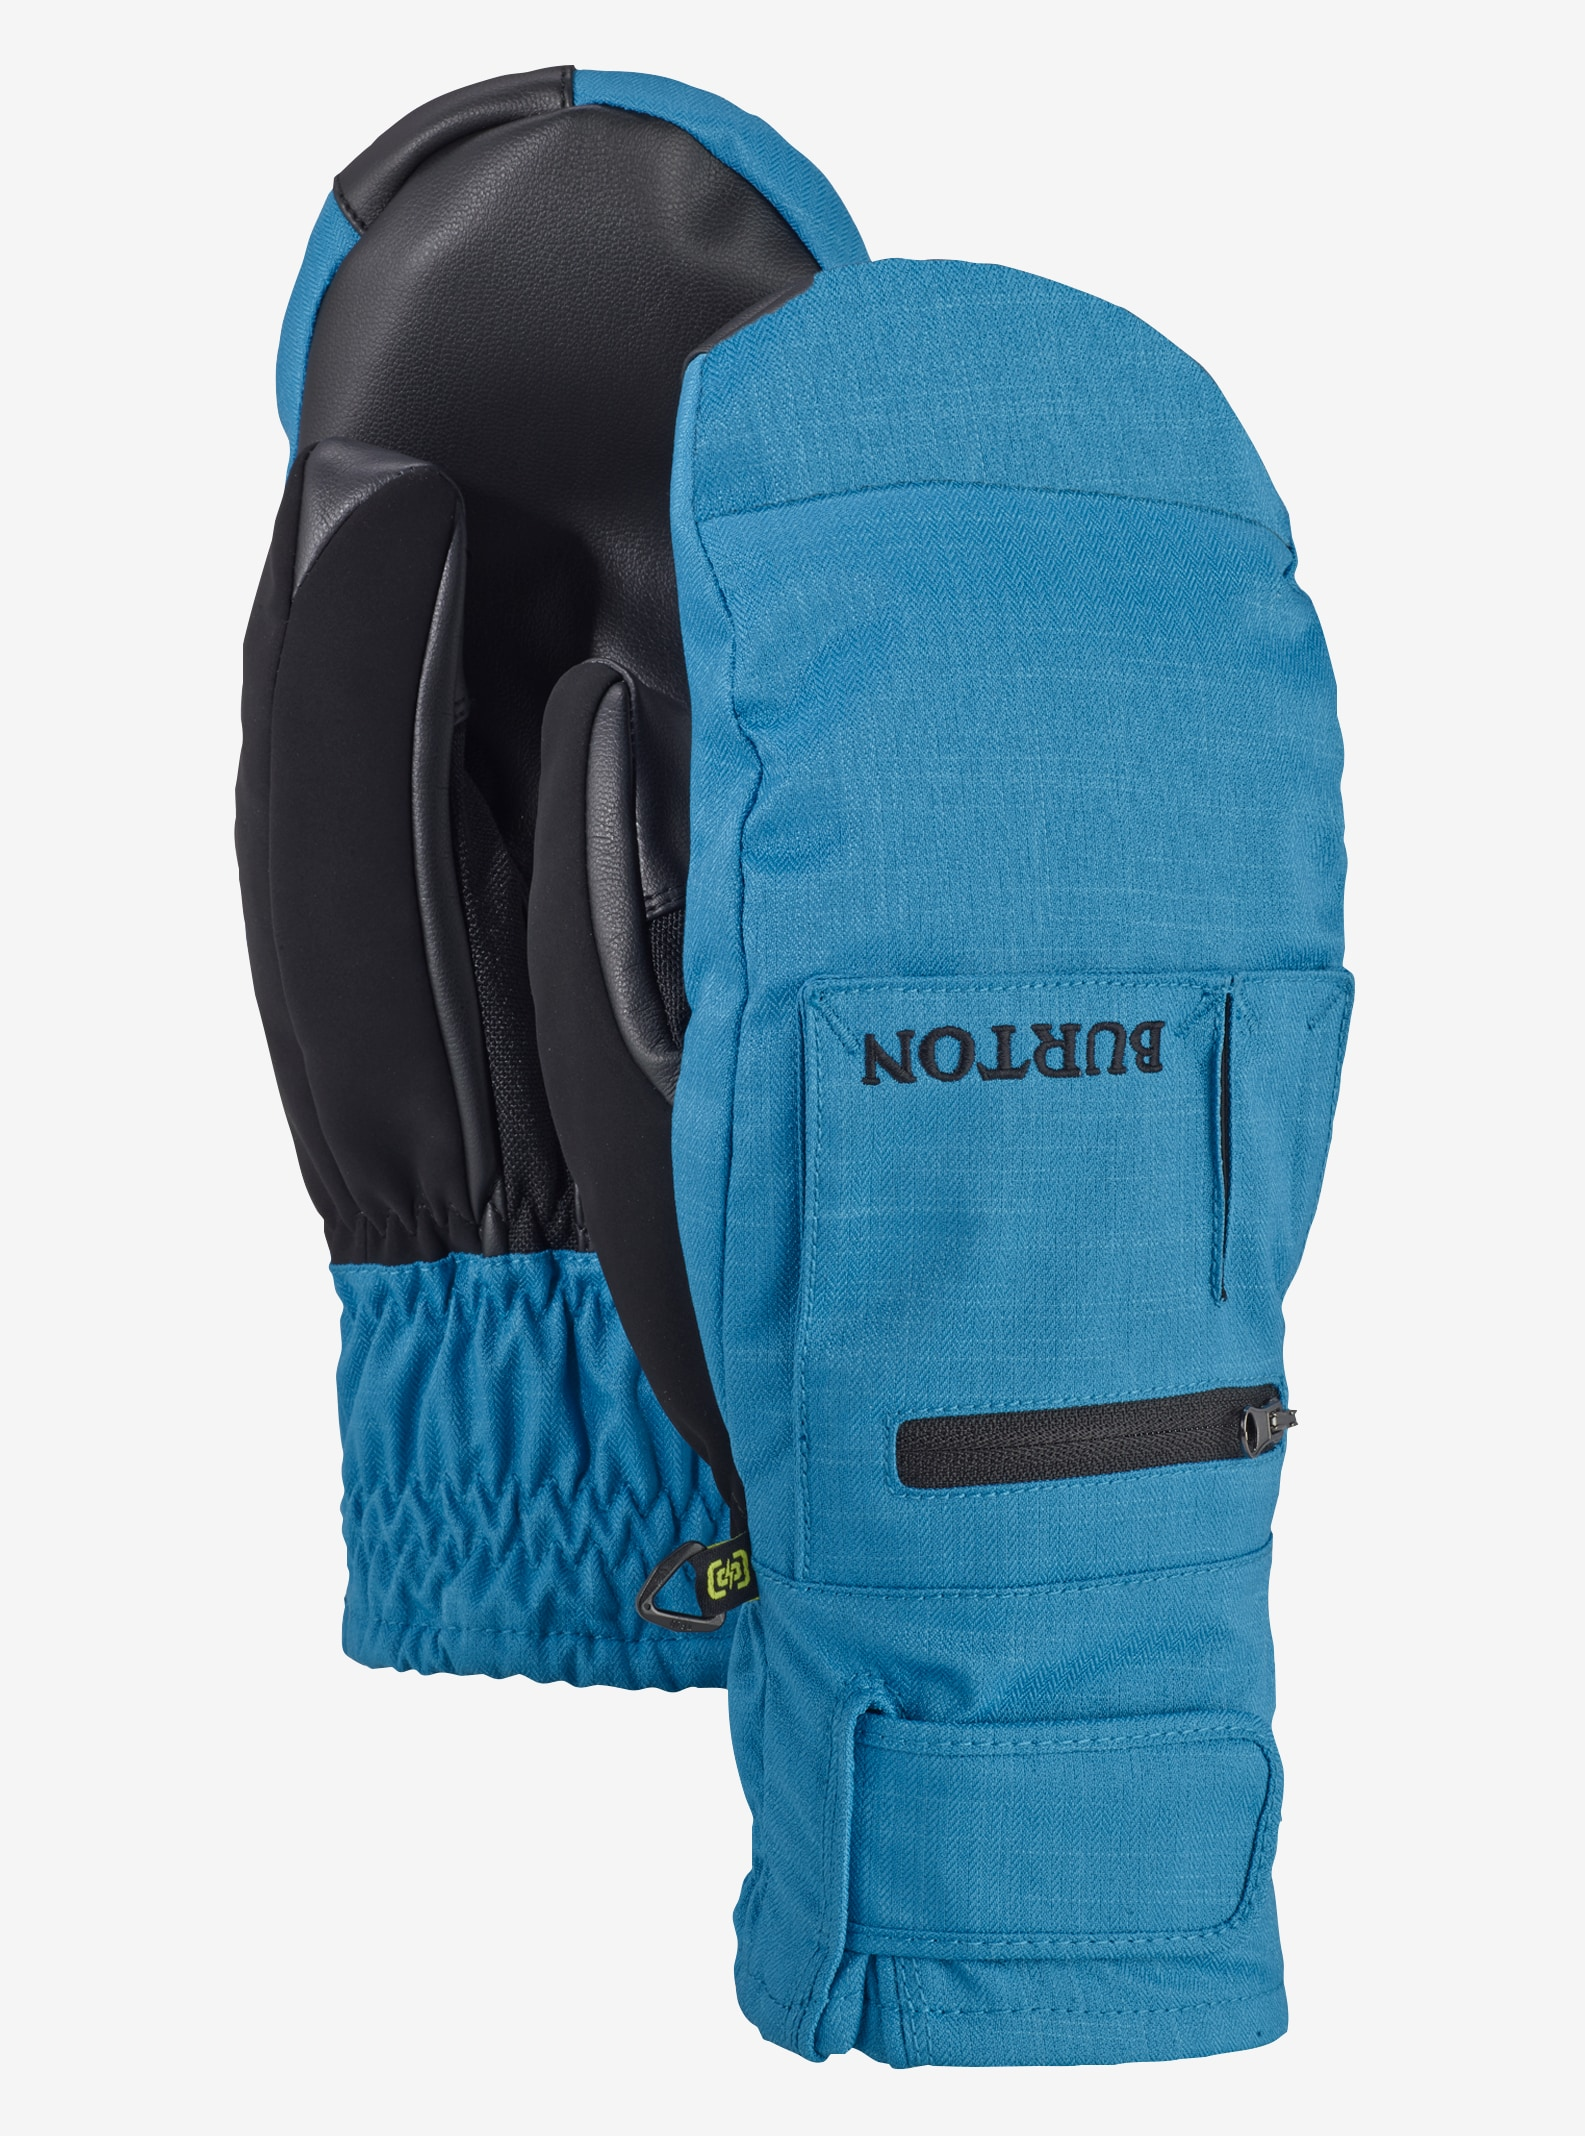 Men's Burton Baker 2-In-1 Under Mitt shown in Mountaineer